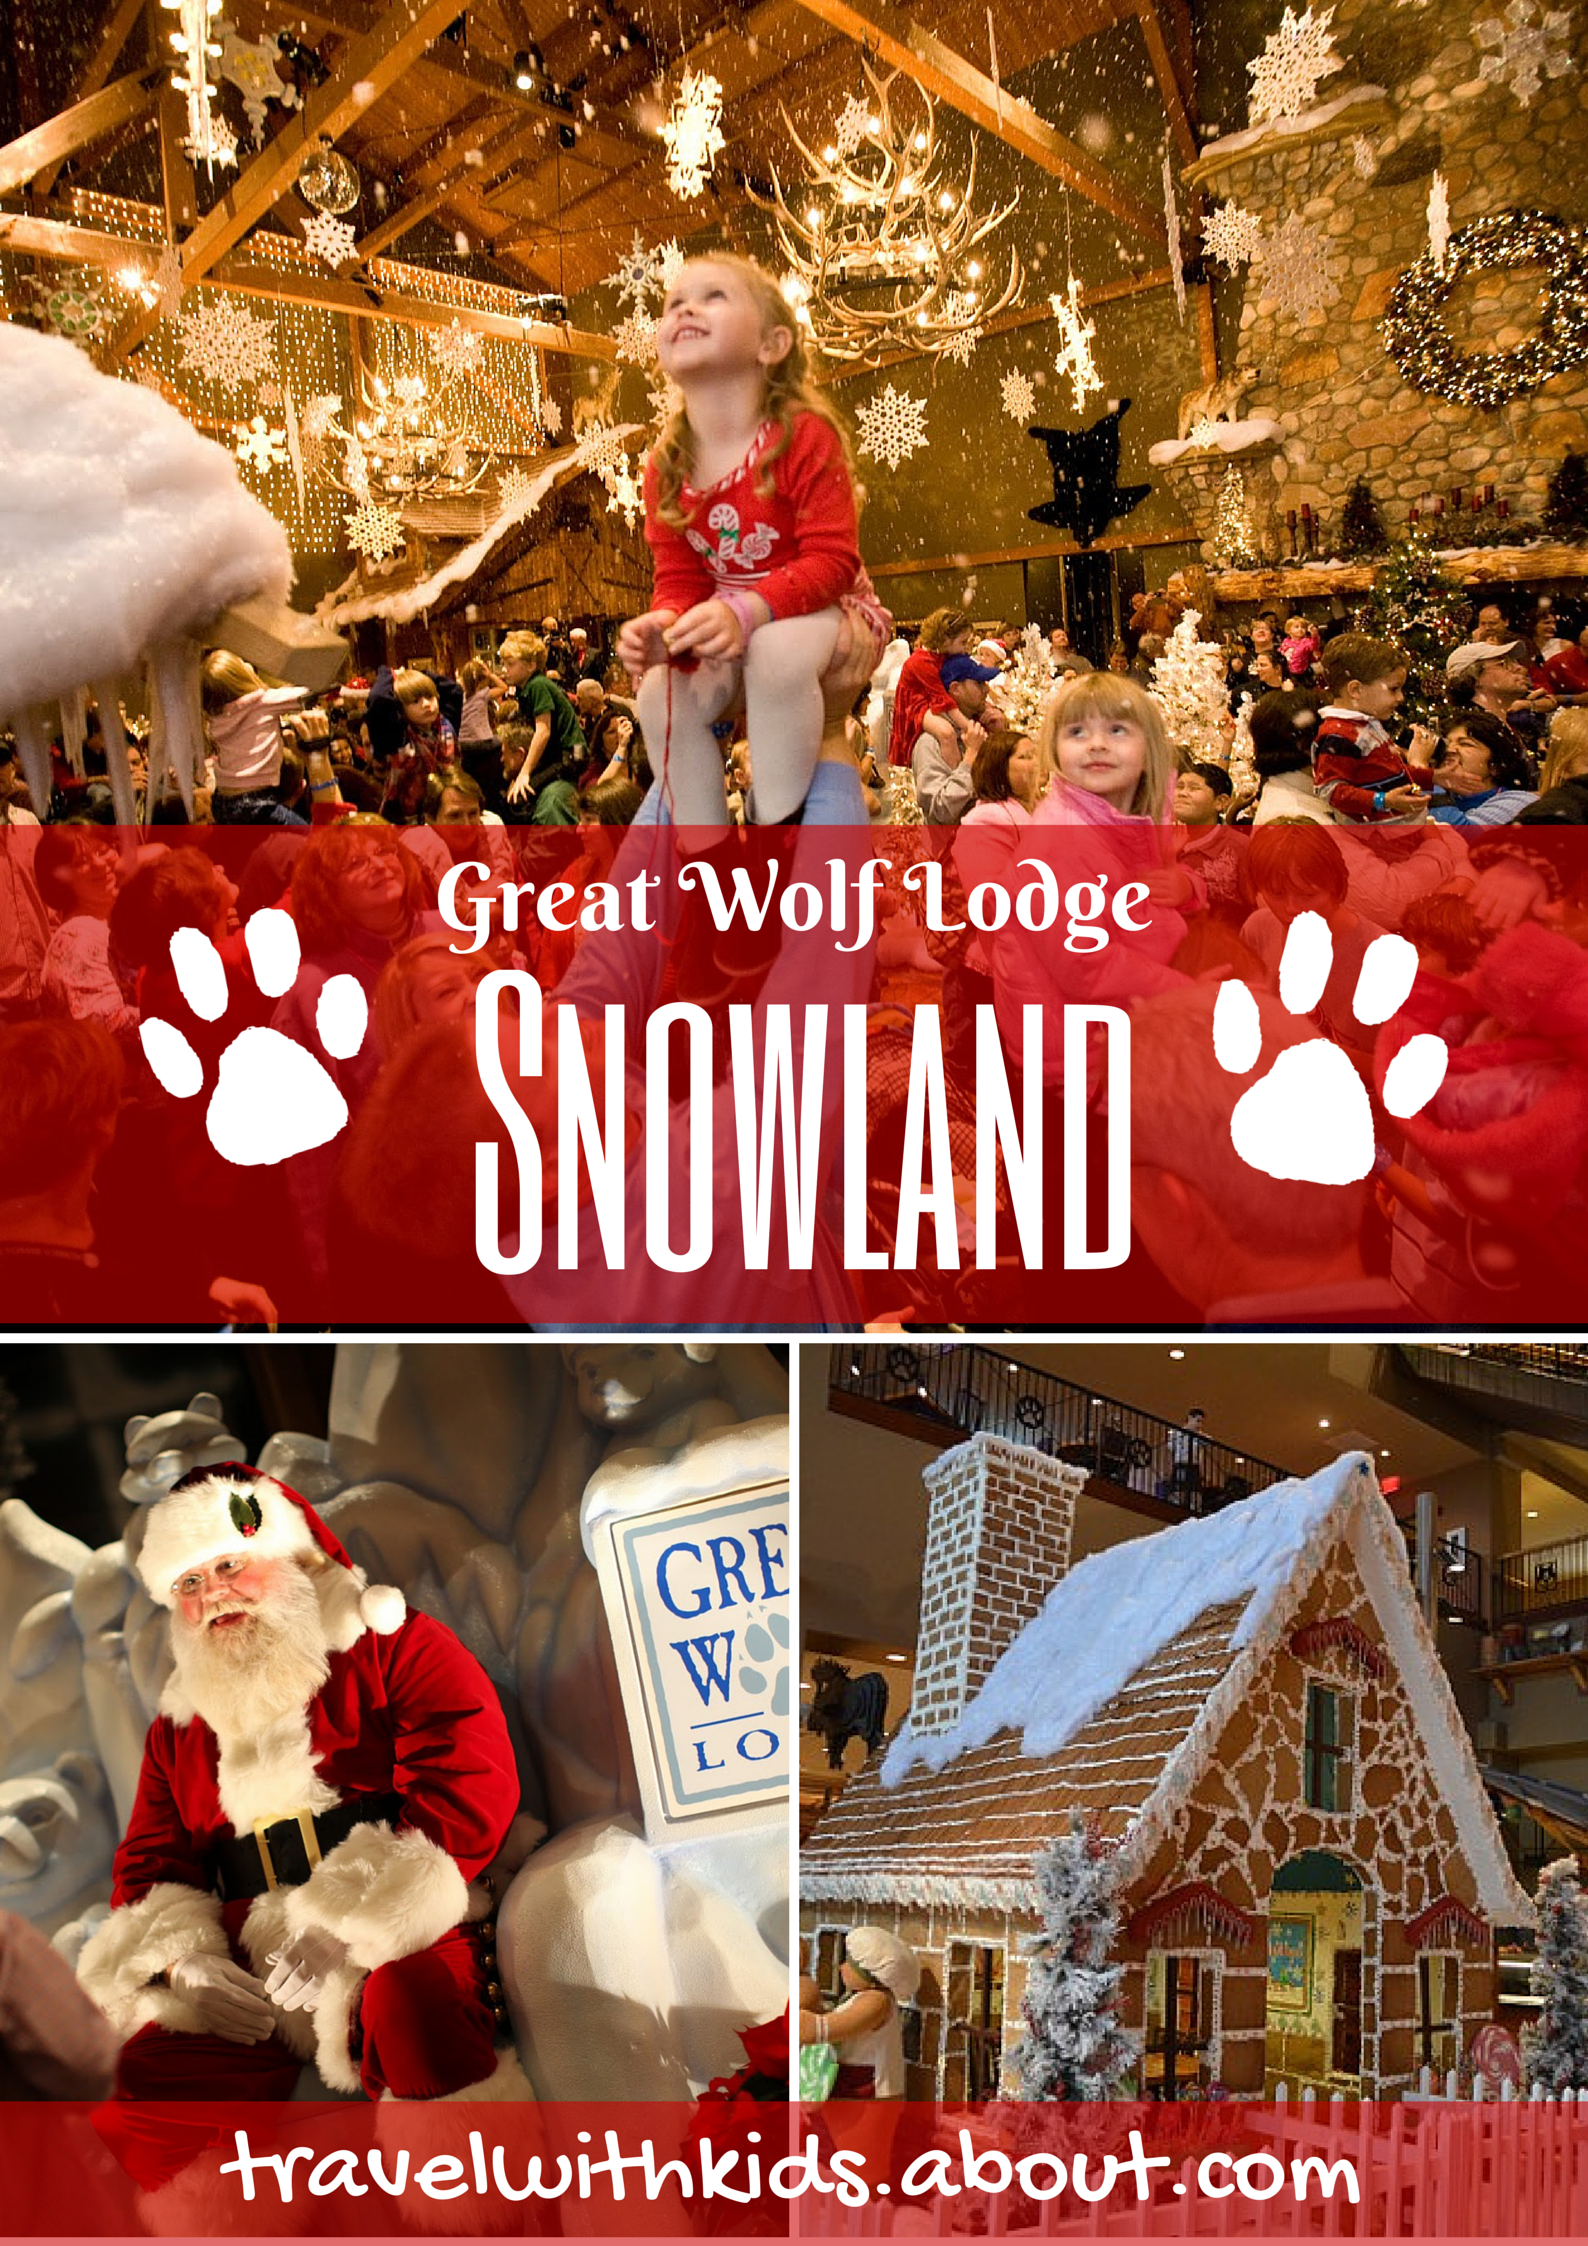 Best Family Christmas Vacations.Celebrate The Holidays At Great Wolf Lodge S Snowland